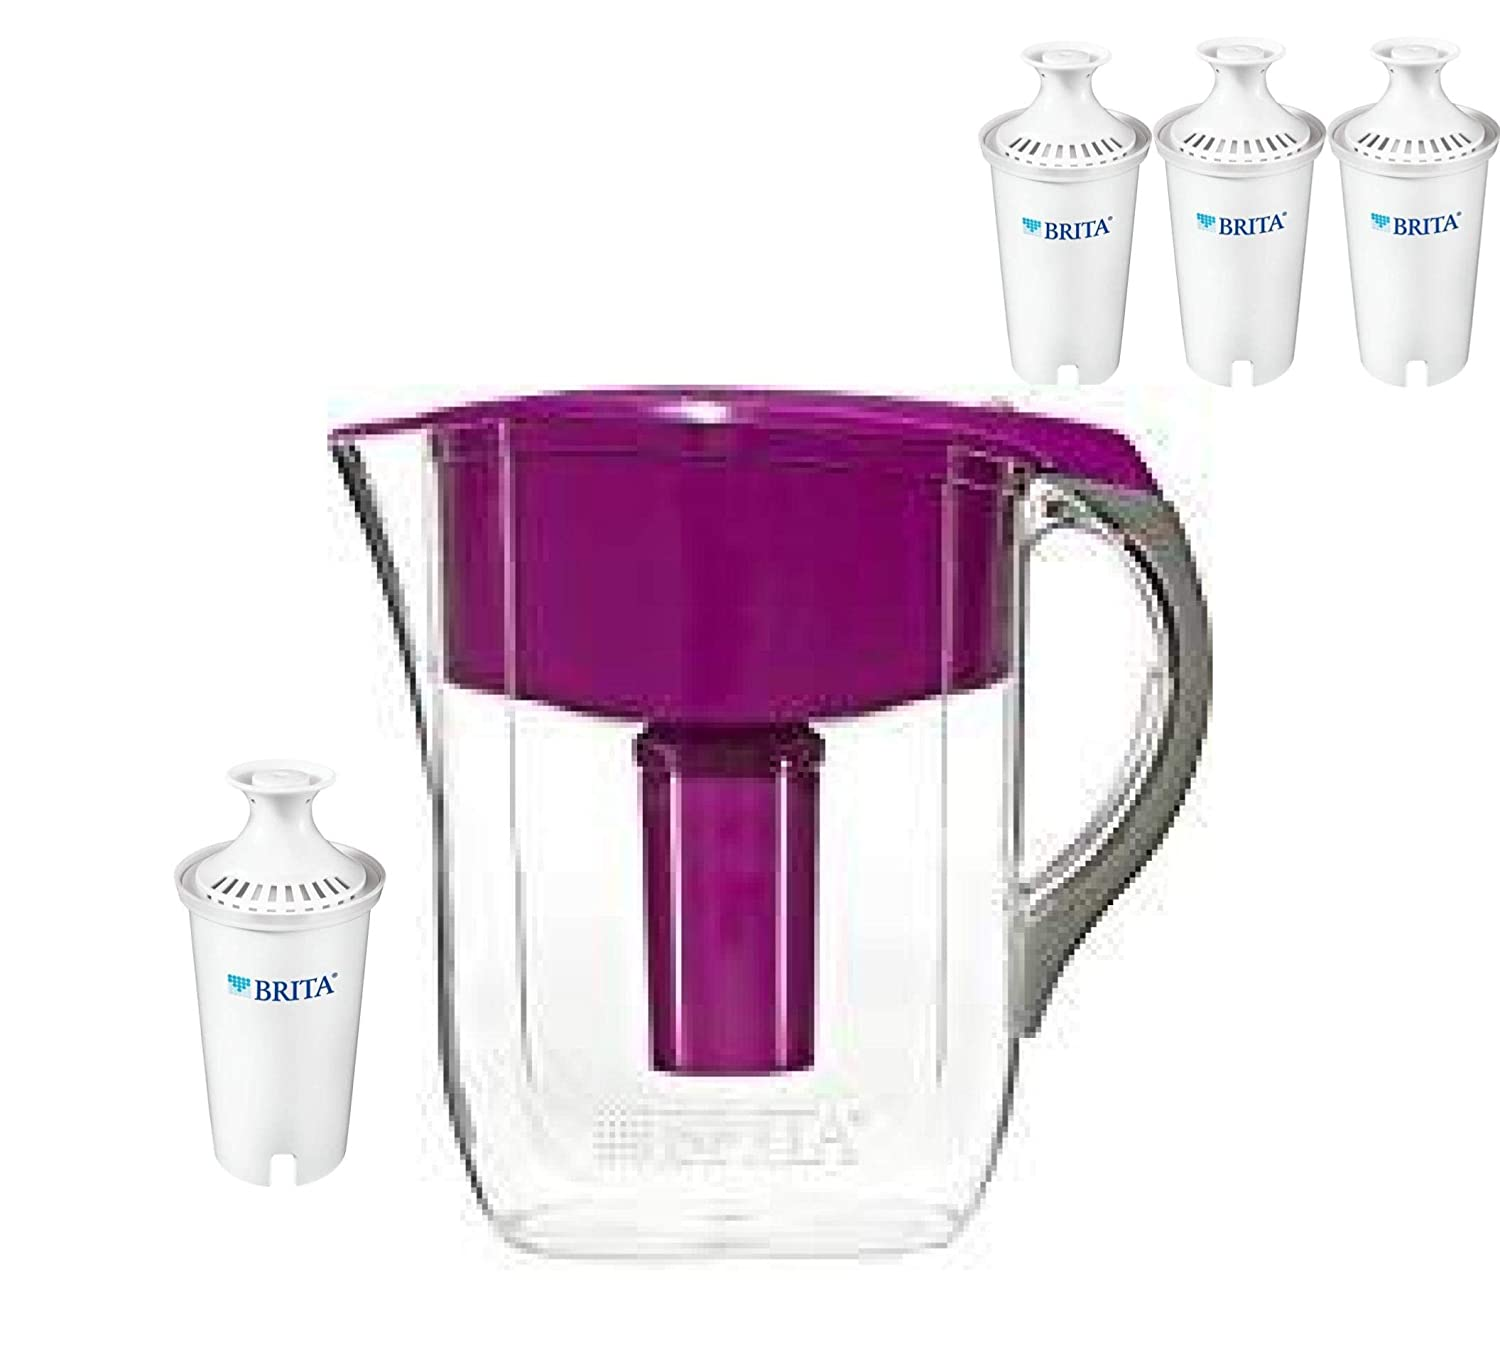 Brita Large 10 Cup Grand Water Pitcher (Pitcher with 4 Filters) Joey'z67